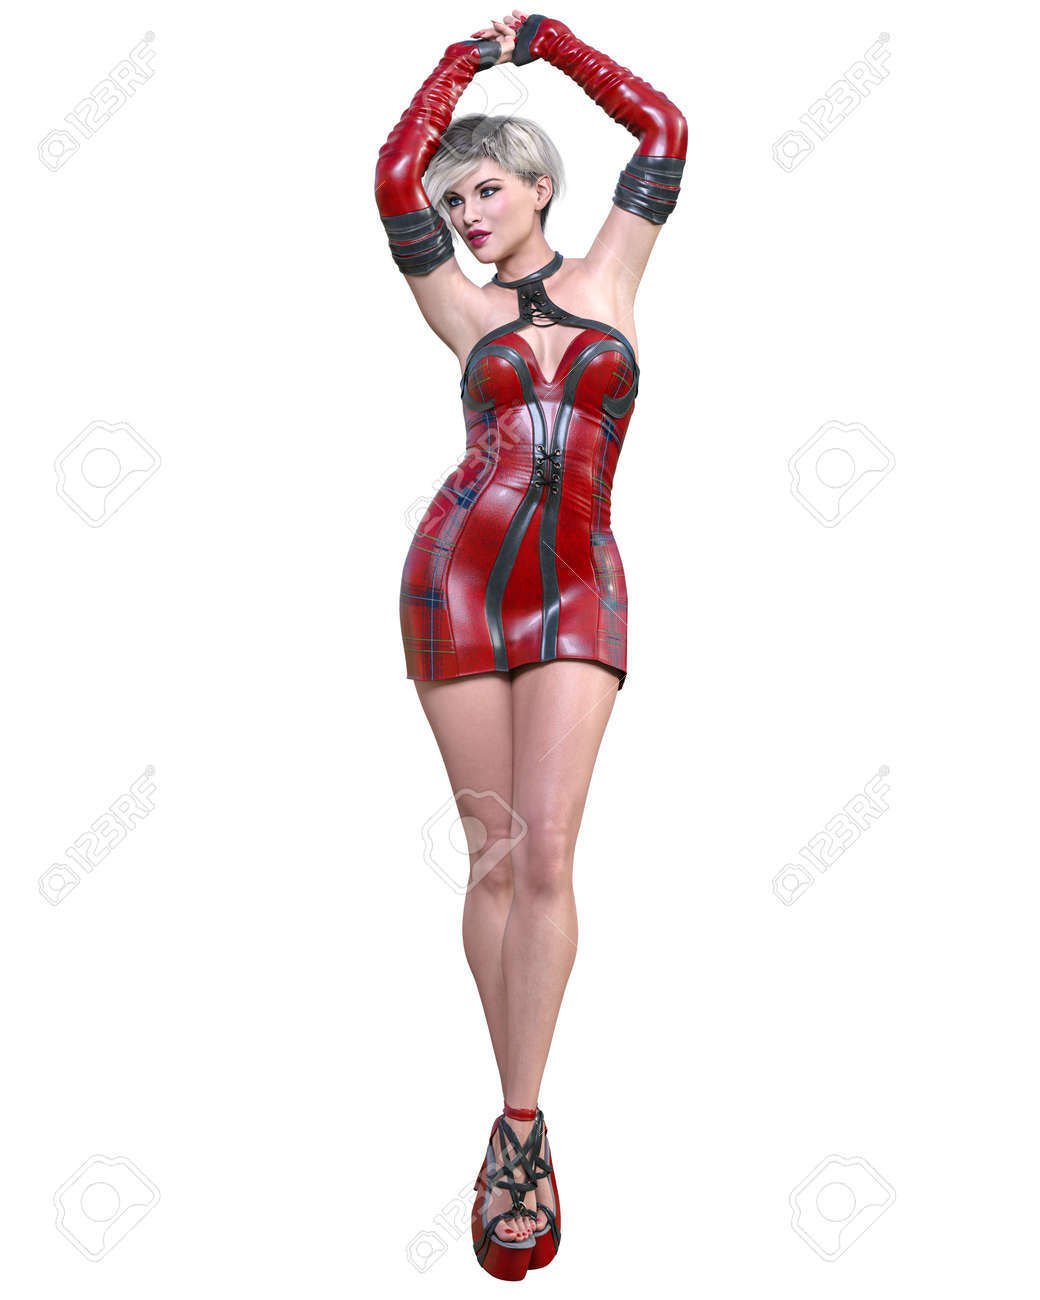 Beautiful woman in short futuristic red leather dress.Summer clothes collection.Bright makeup.Woman studio photography.Conceptual fashion art.Seductive candid pose.Femme fatale.3D Render. - 165356392